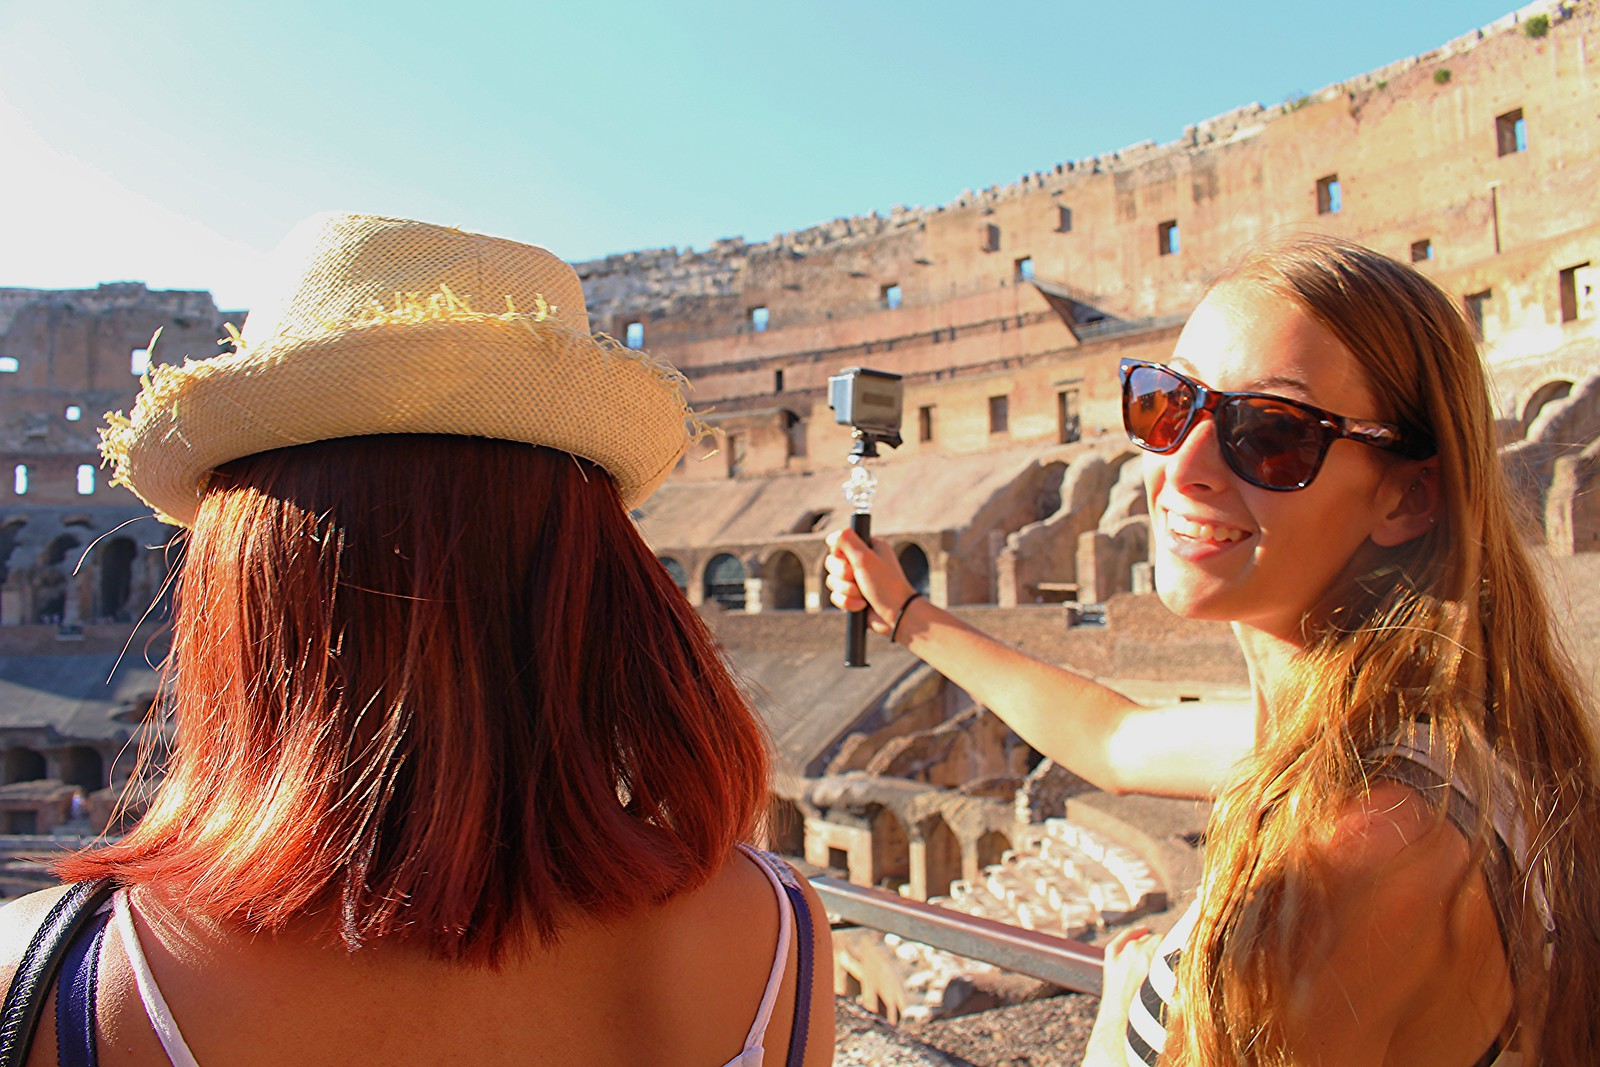 Exploring the Colosseum